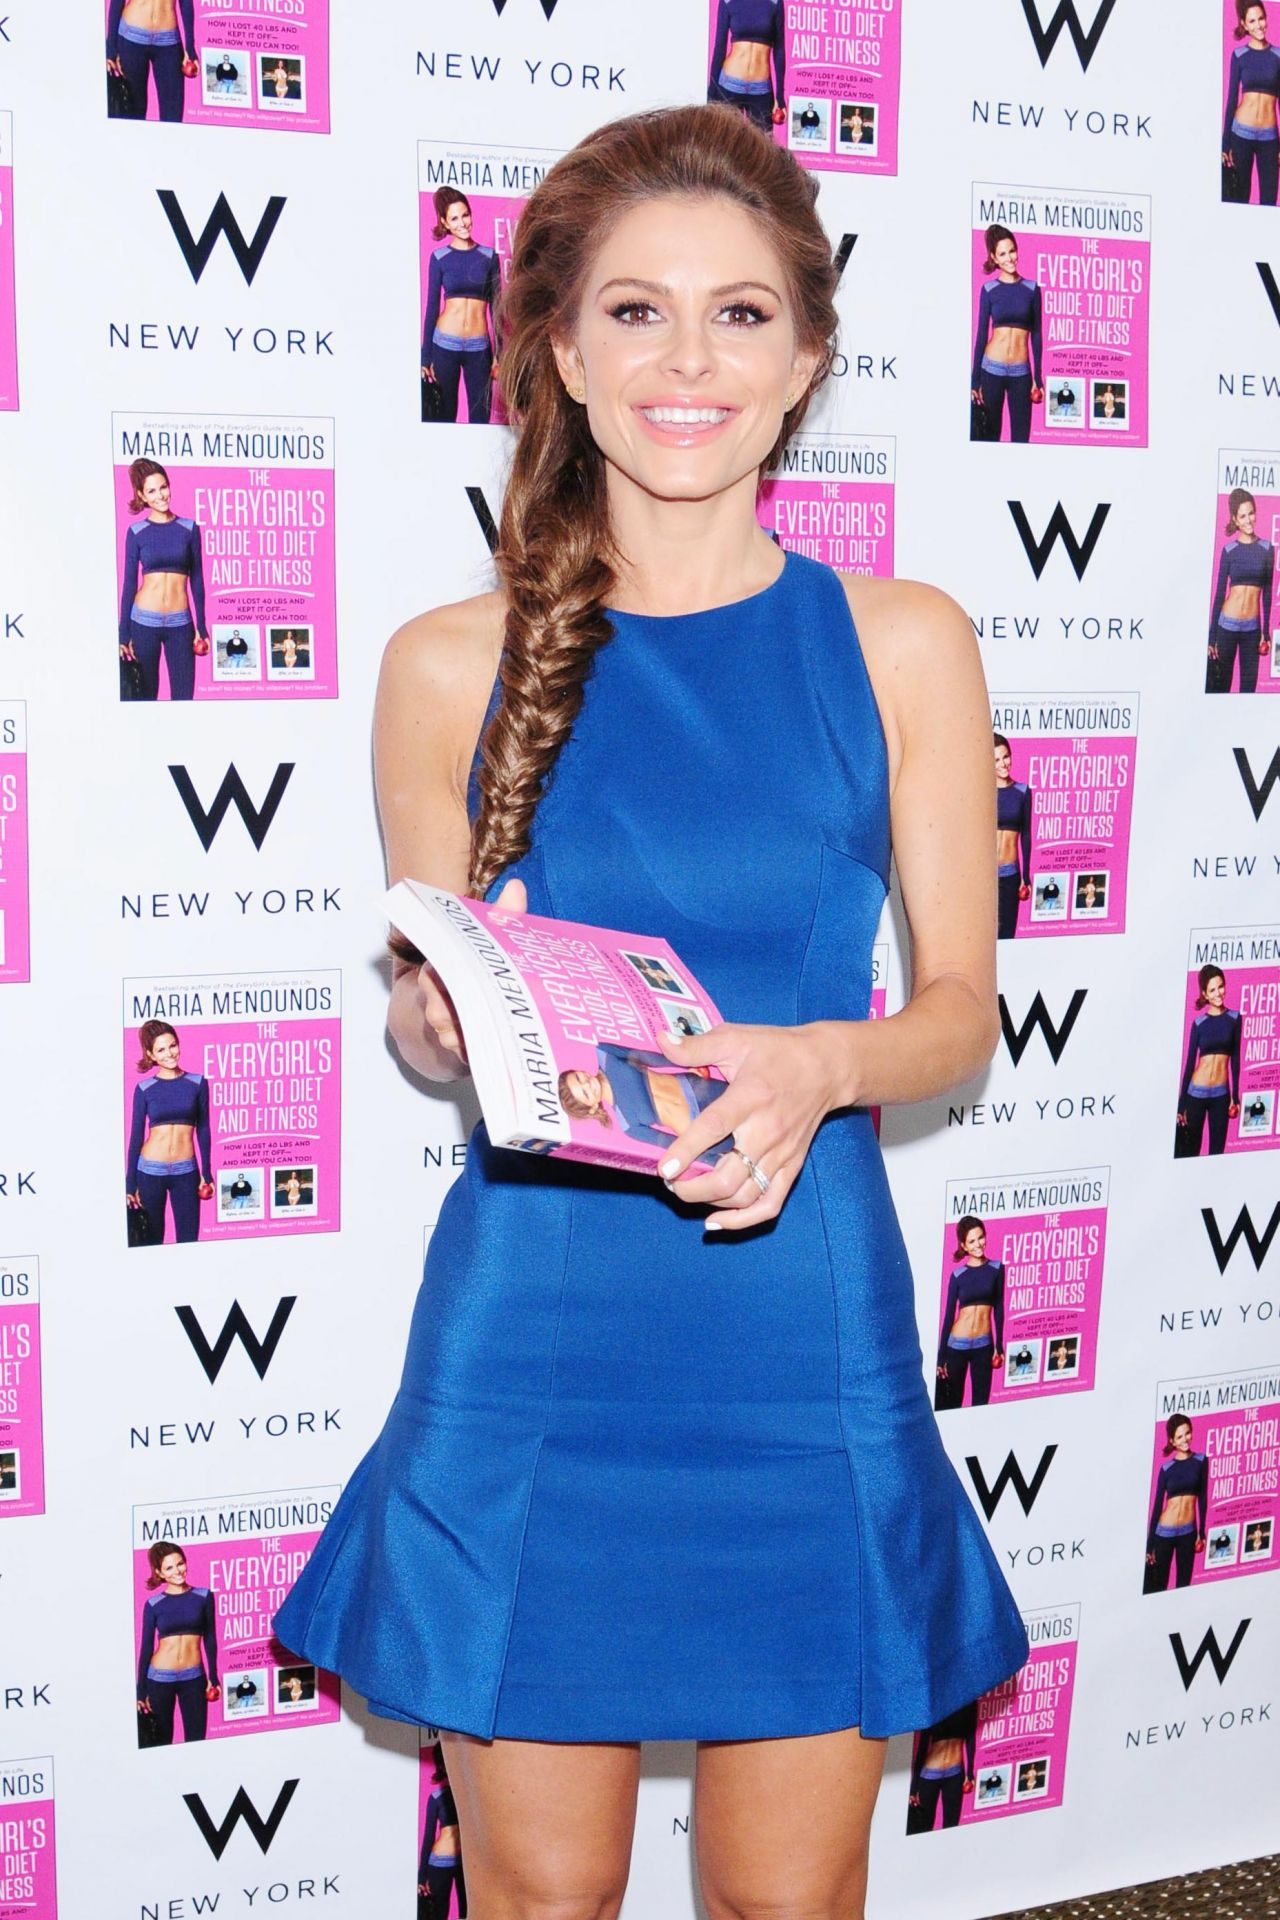 Maria Menounos - The EveryGirl